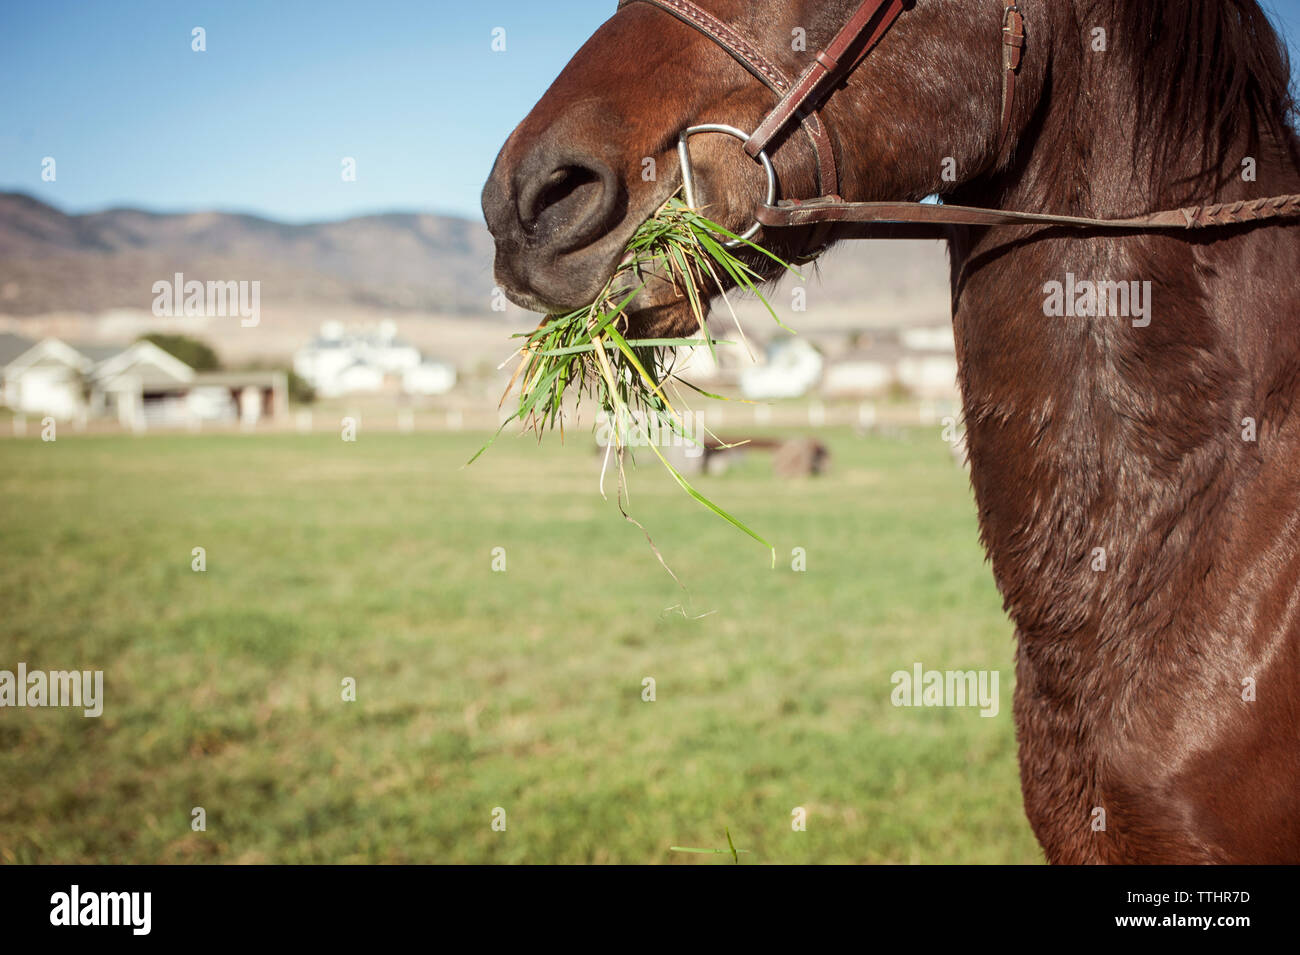 Cropped image of horse eating grass on field - Stock Image